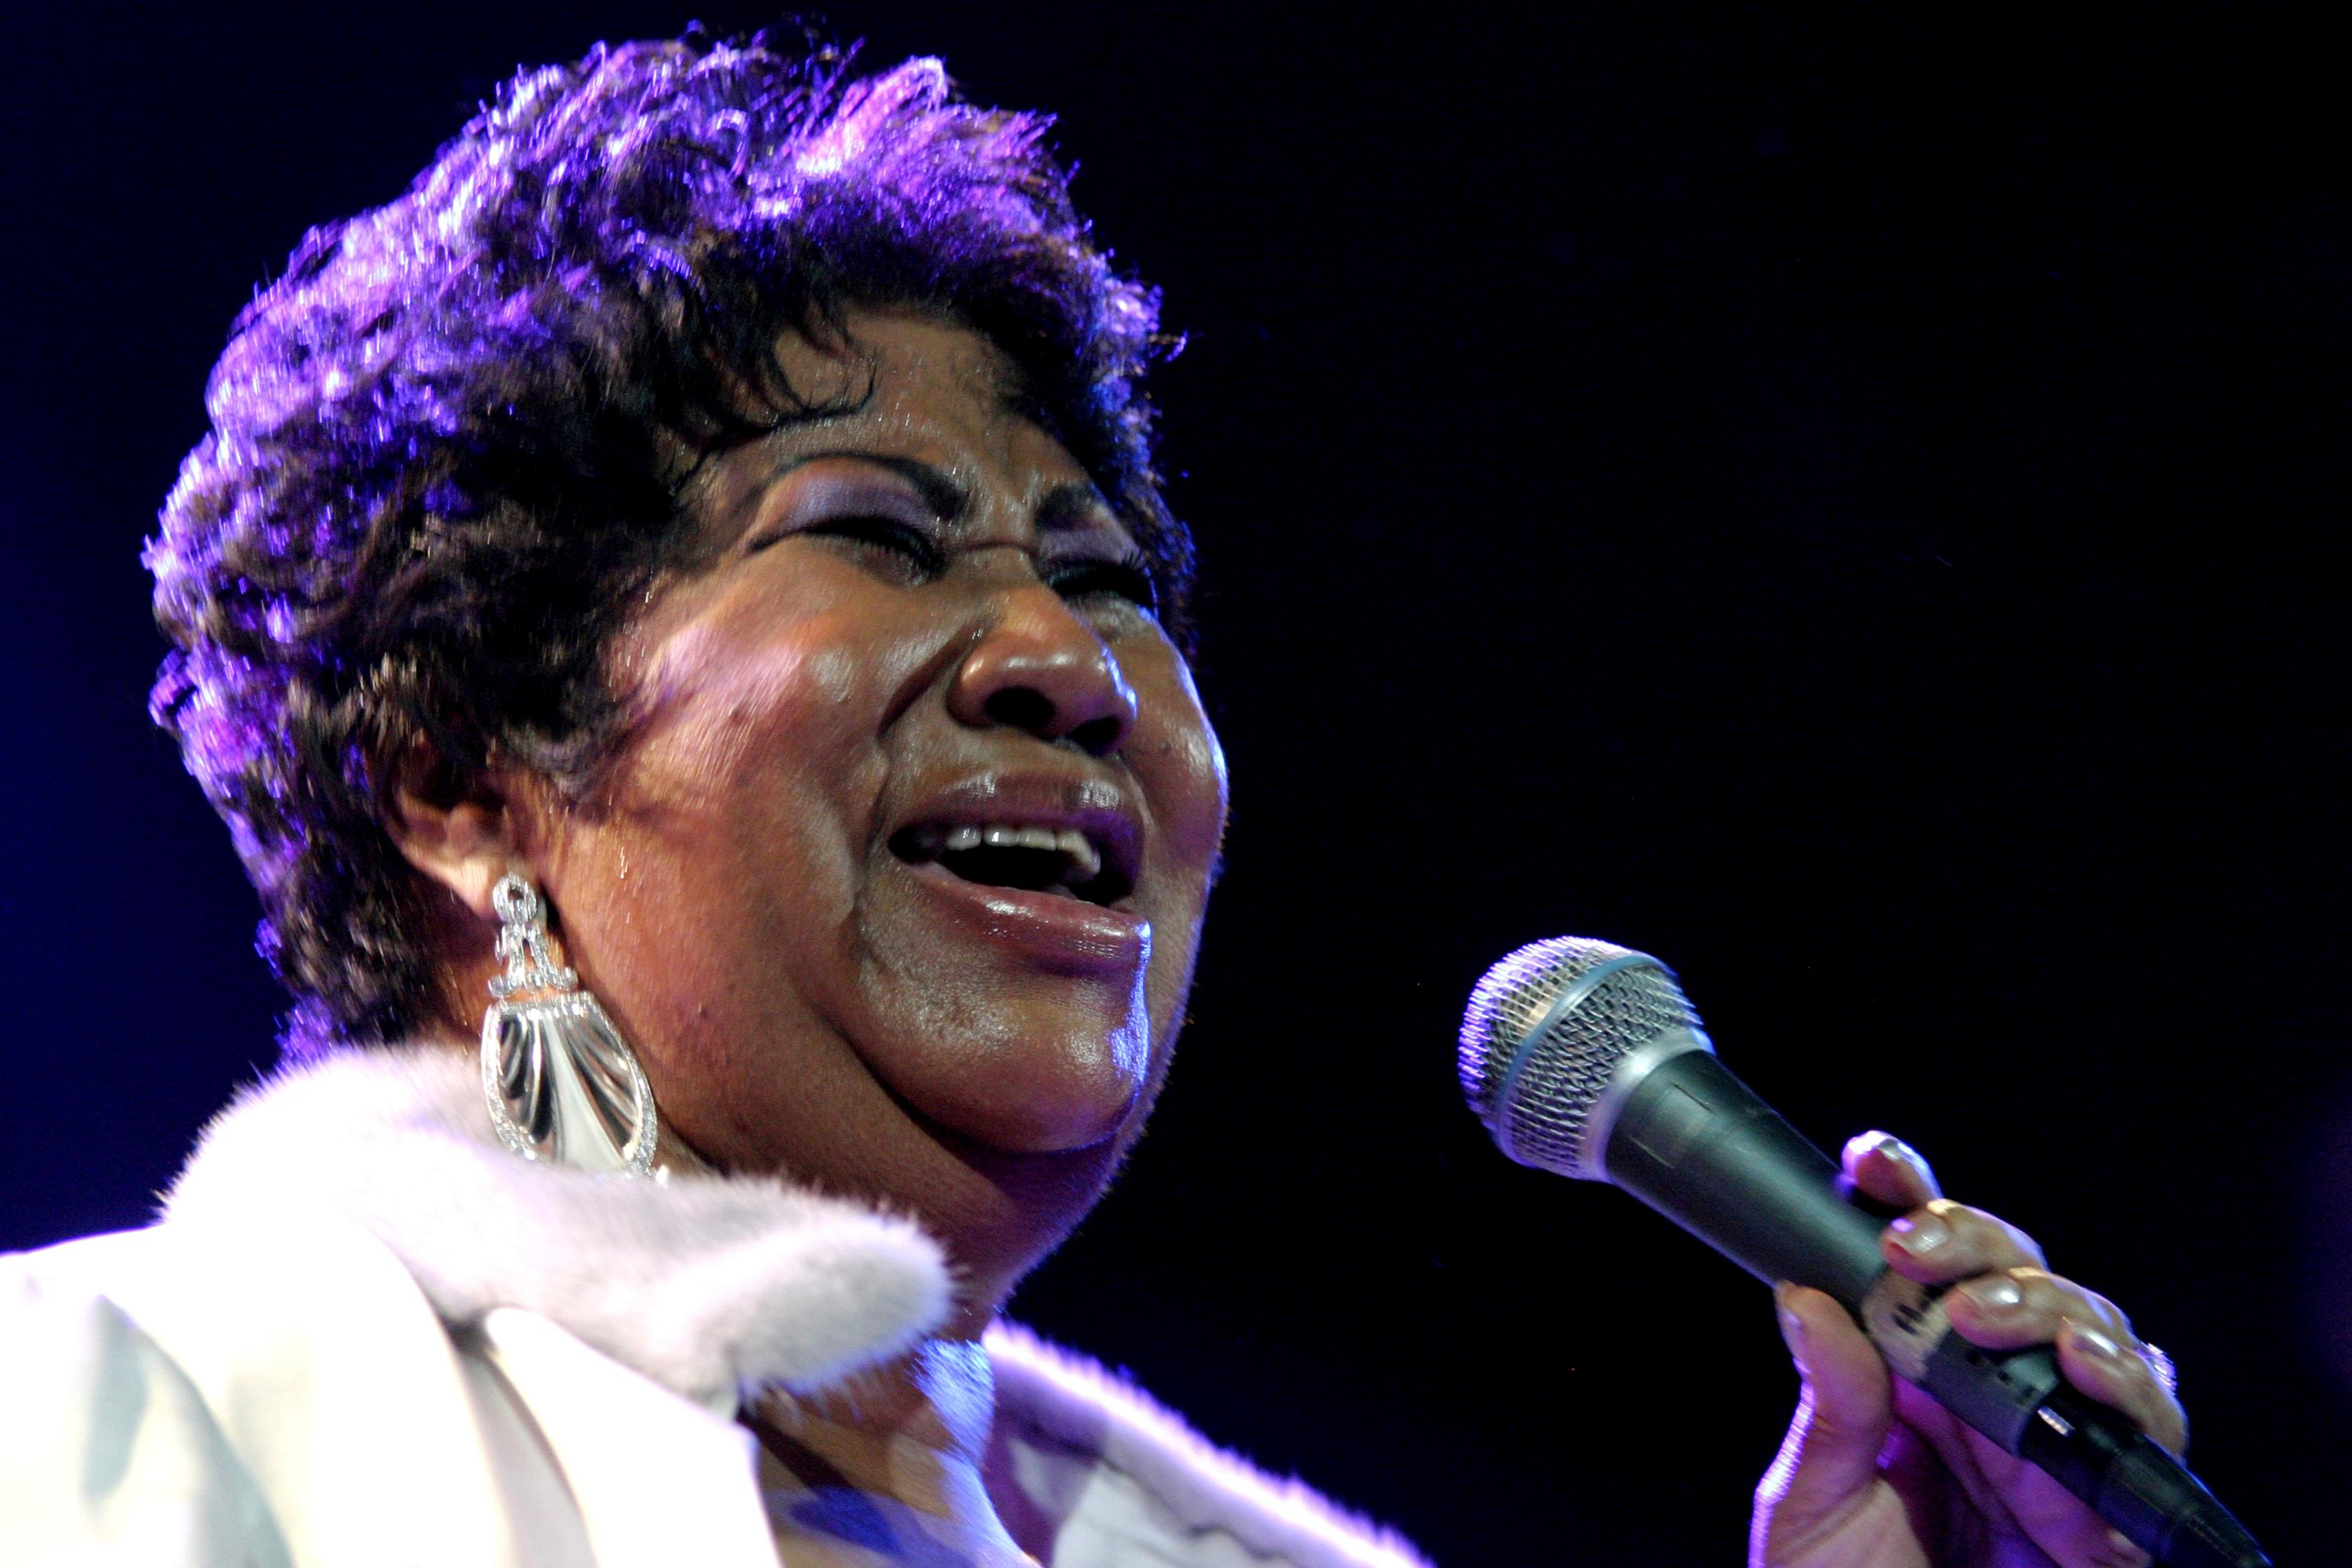 FILE - In this Nov. 21, 2008 file photo, Aretha Franklin performs at the House of Blues in Los Angeles. (AP Photo/Shea Walsh, File)